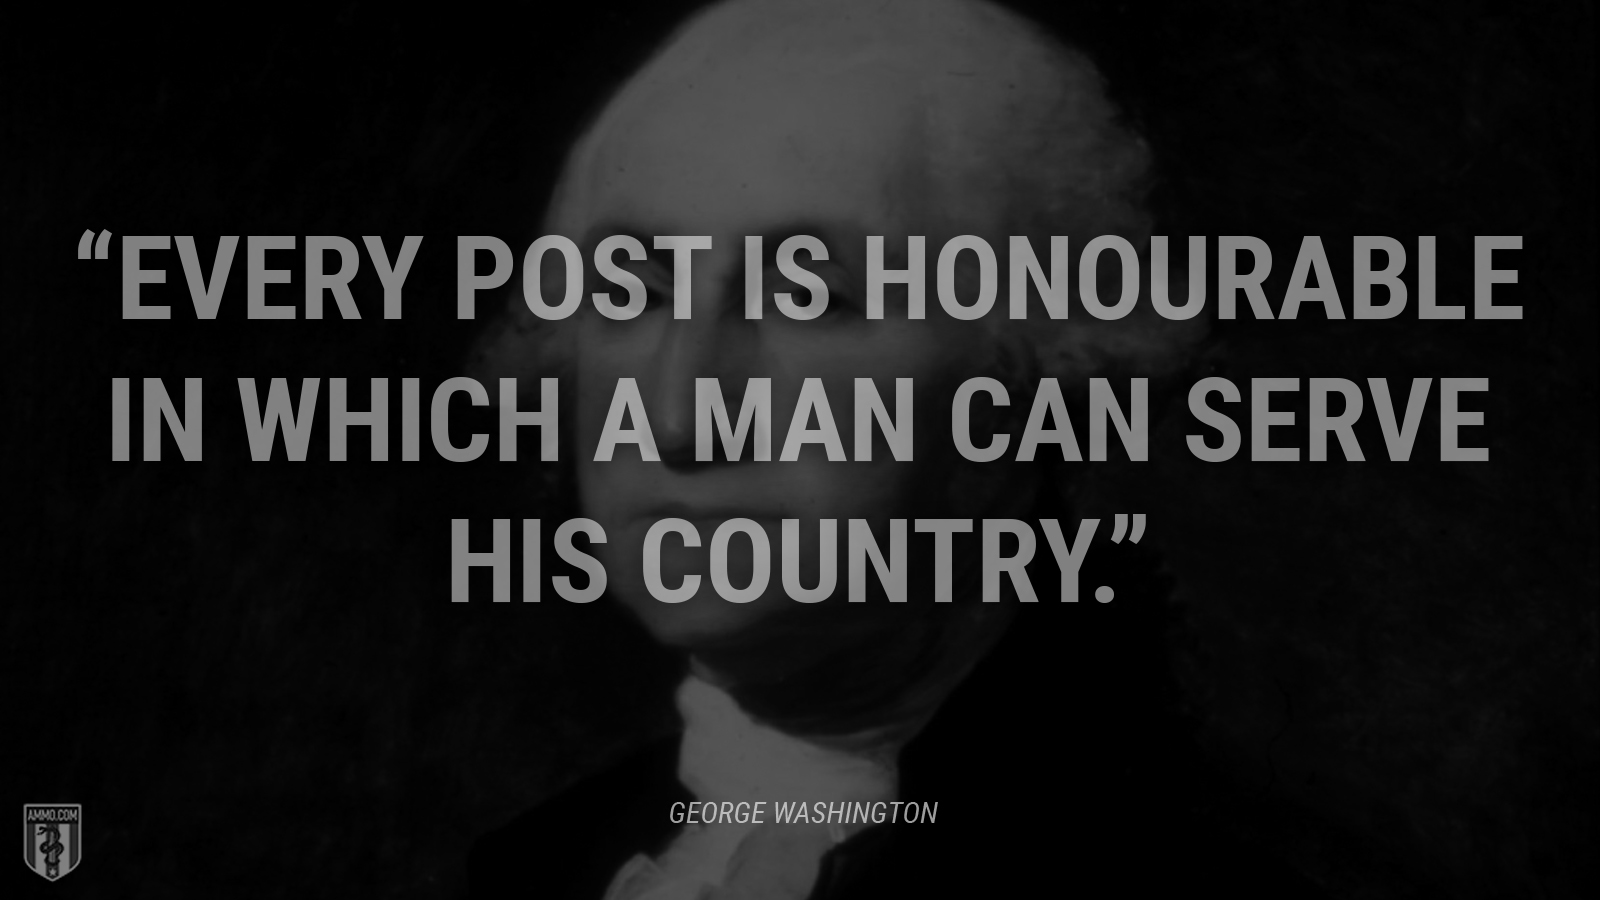 """Every post is honourable in which a man can serve his country."" - George Washington"